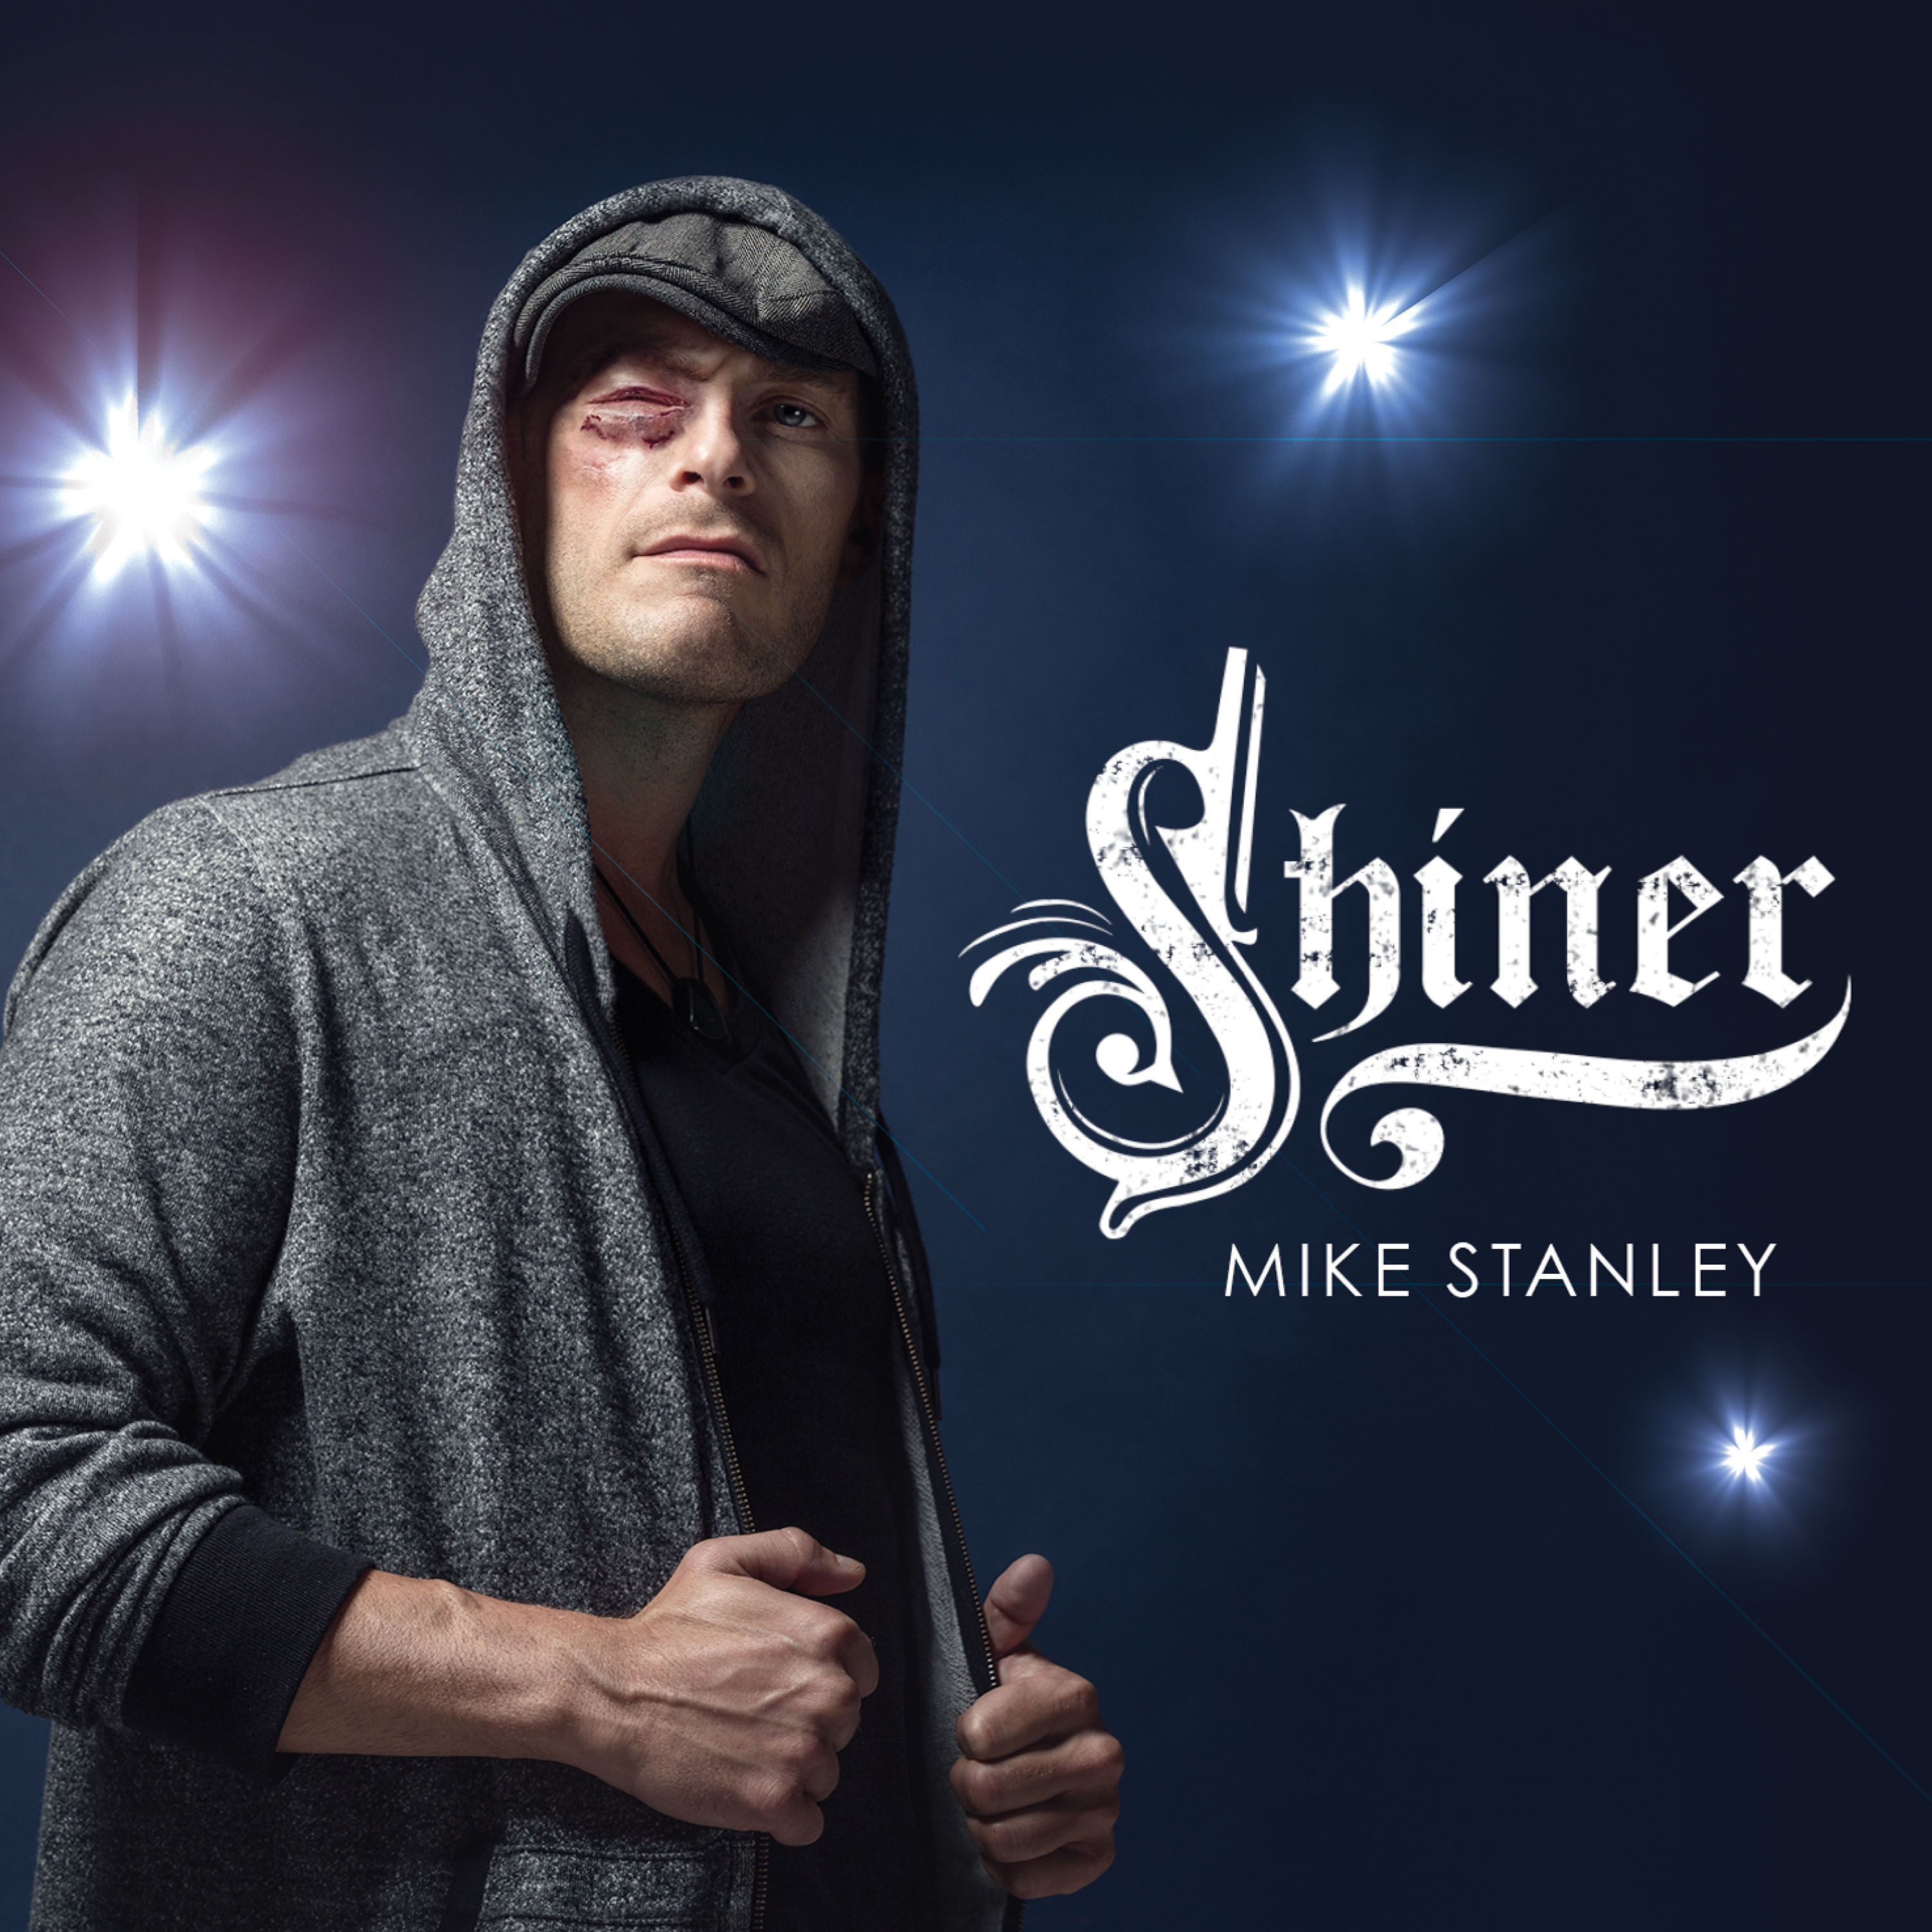 COMEDY NEWS: Comedian Mike Stanley's Latest Shiner Set for Release Friday December 2 from Stand Up! Records